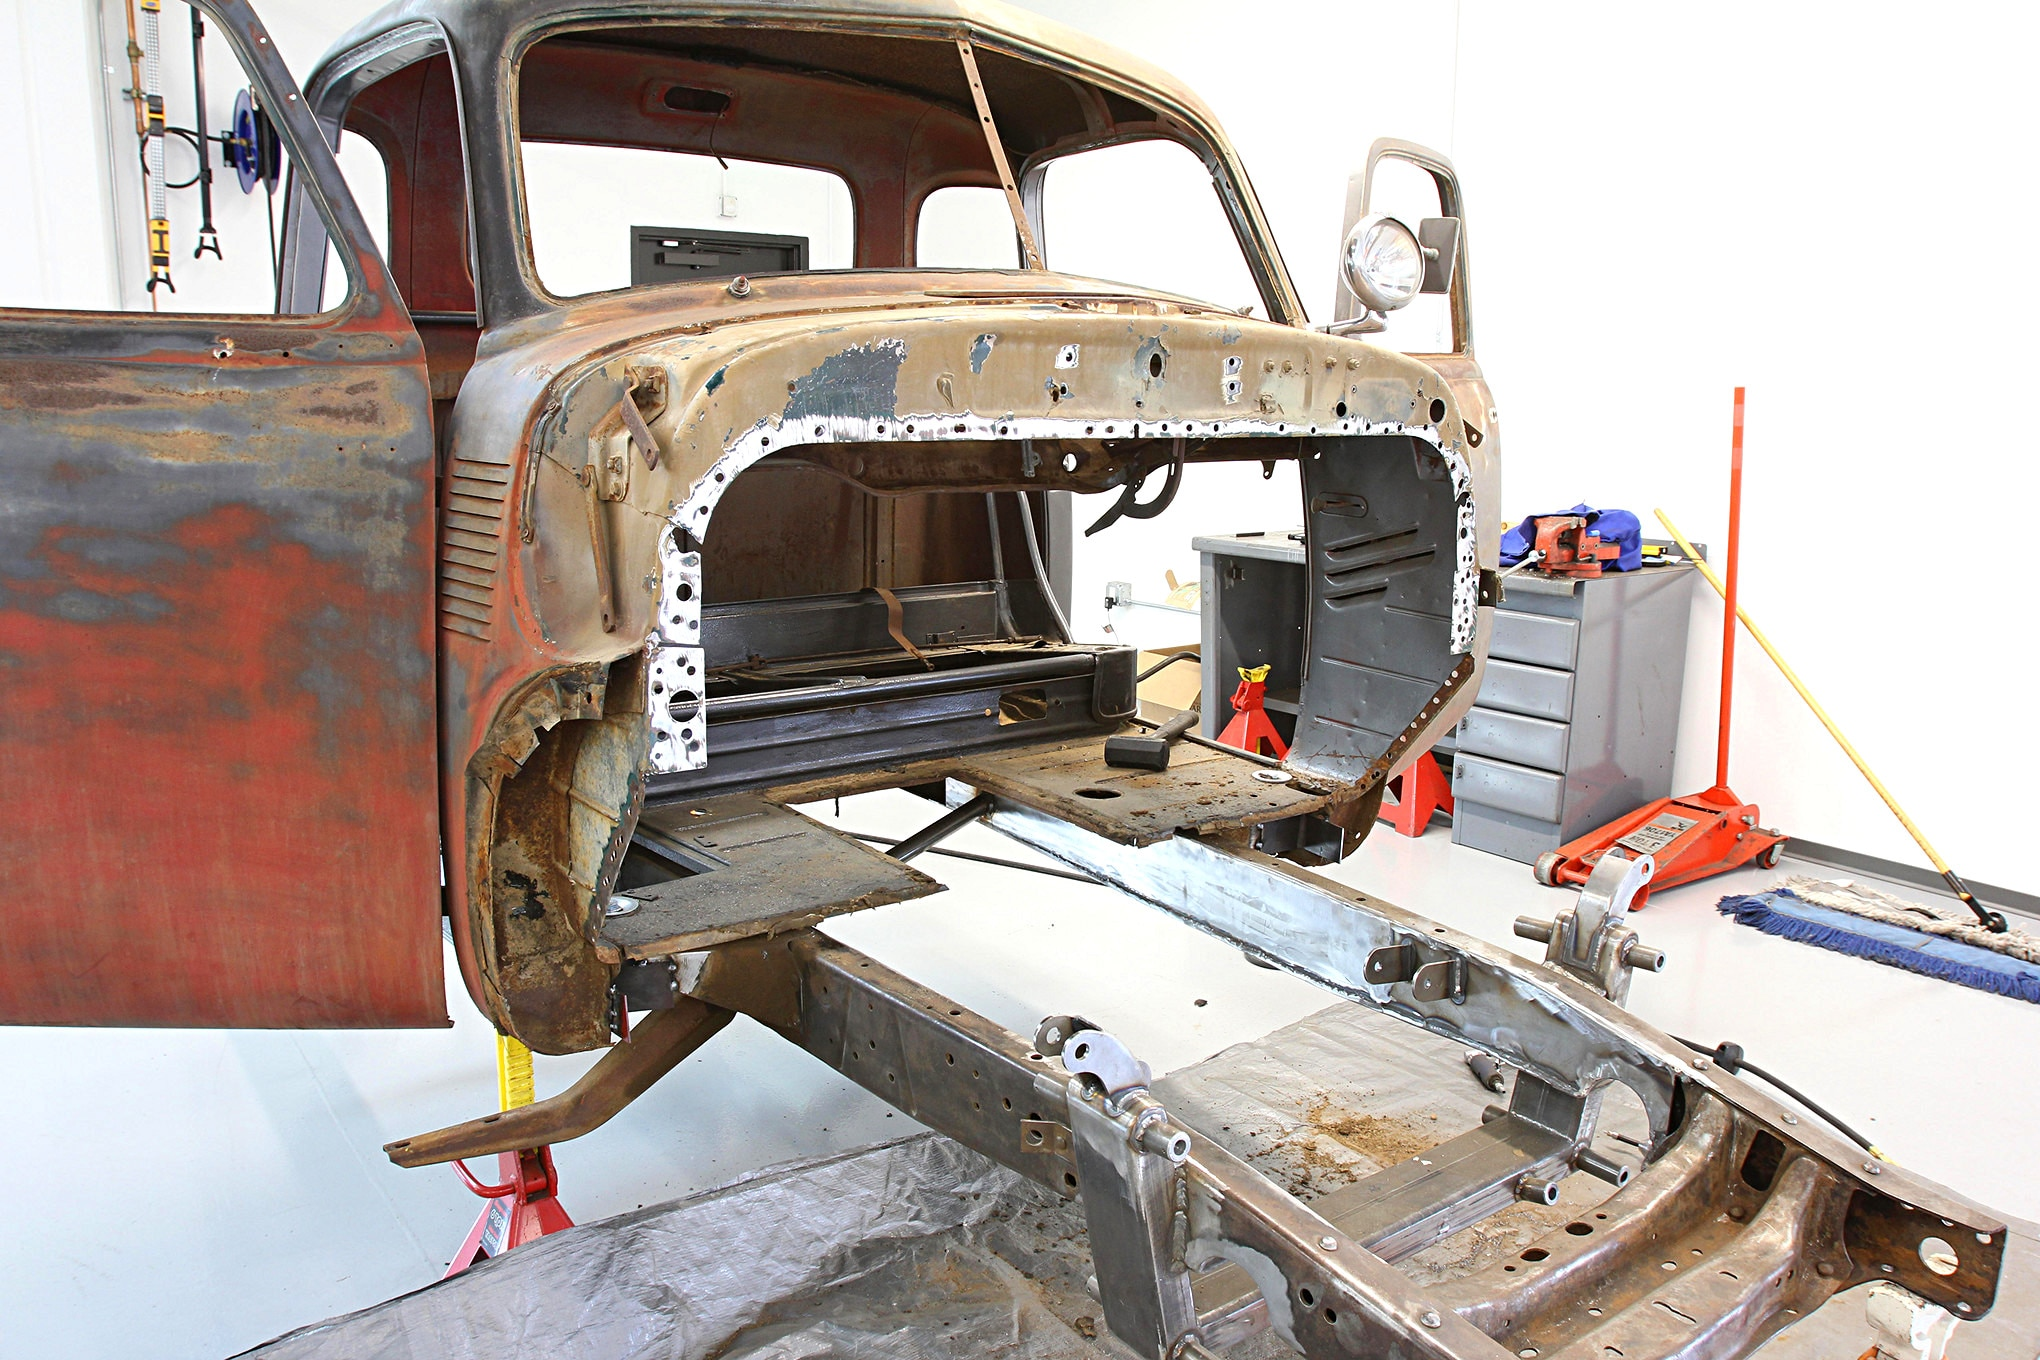 Repairing a damaged floor and firewall on a Chevy truck